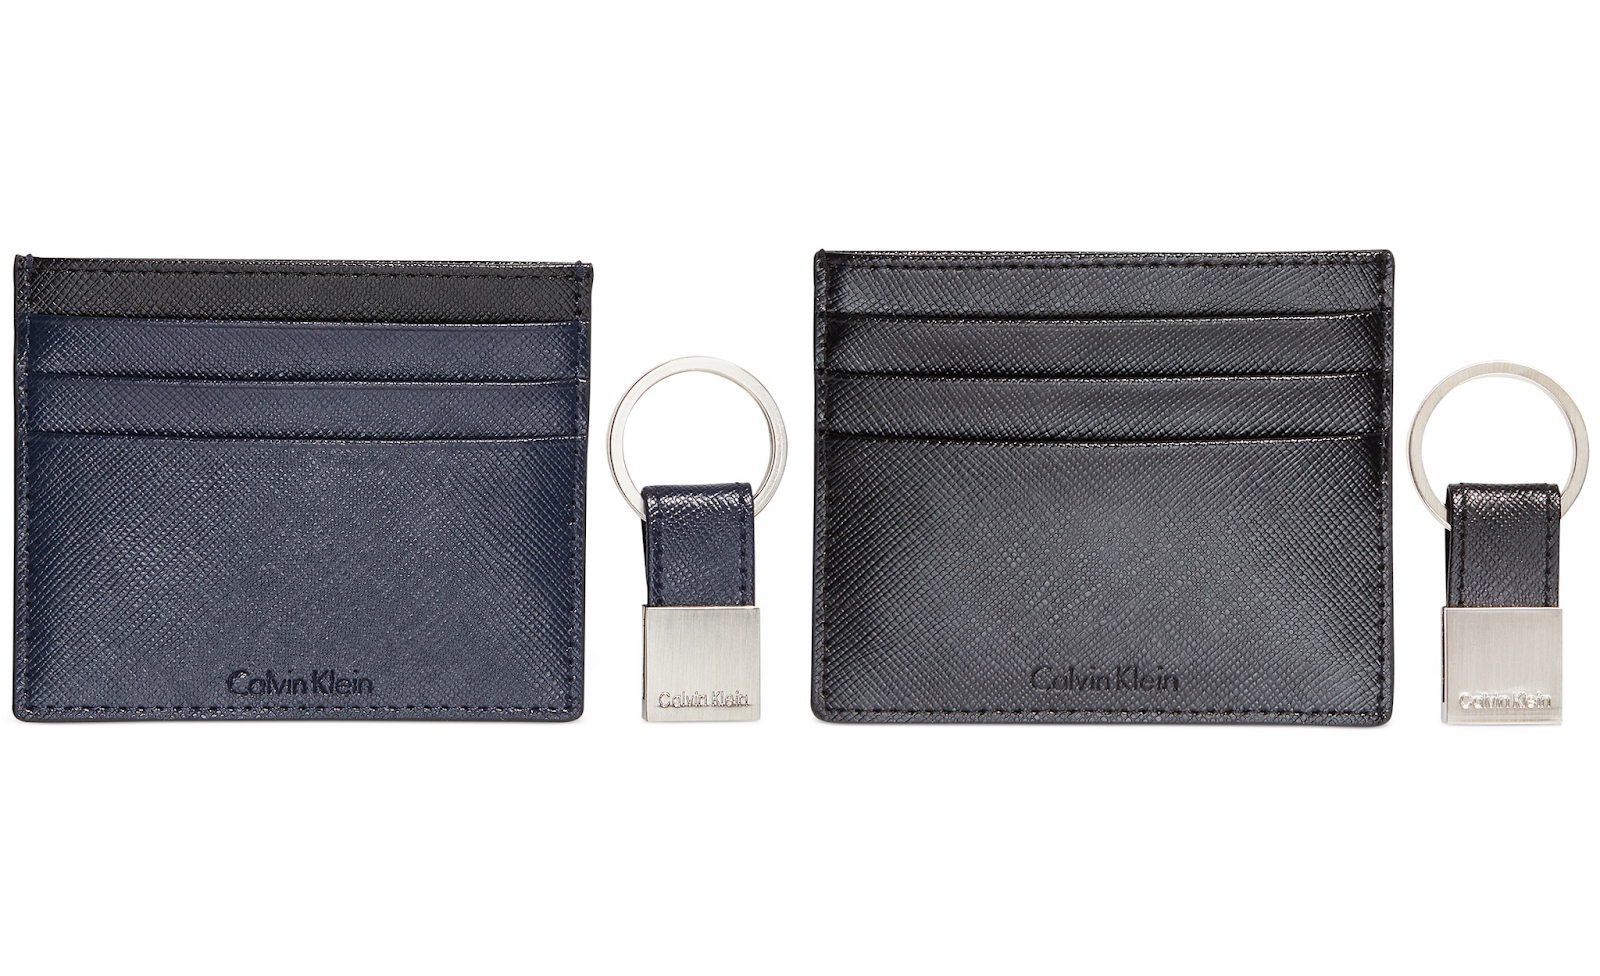 d2d4c111ecfc1 Head over to Macy s and get this Calvin Klein Saffiano Leather Two-Tone  Card Case   Key Fob on sale for  14.99 (Reg.  40). Sale ends 7 15 18.